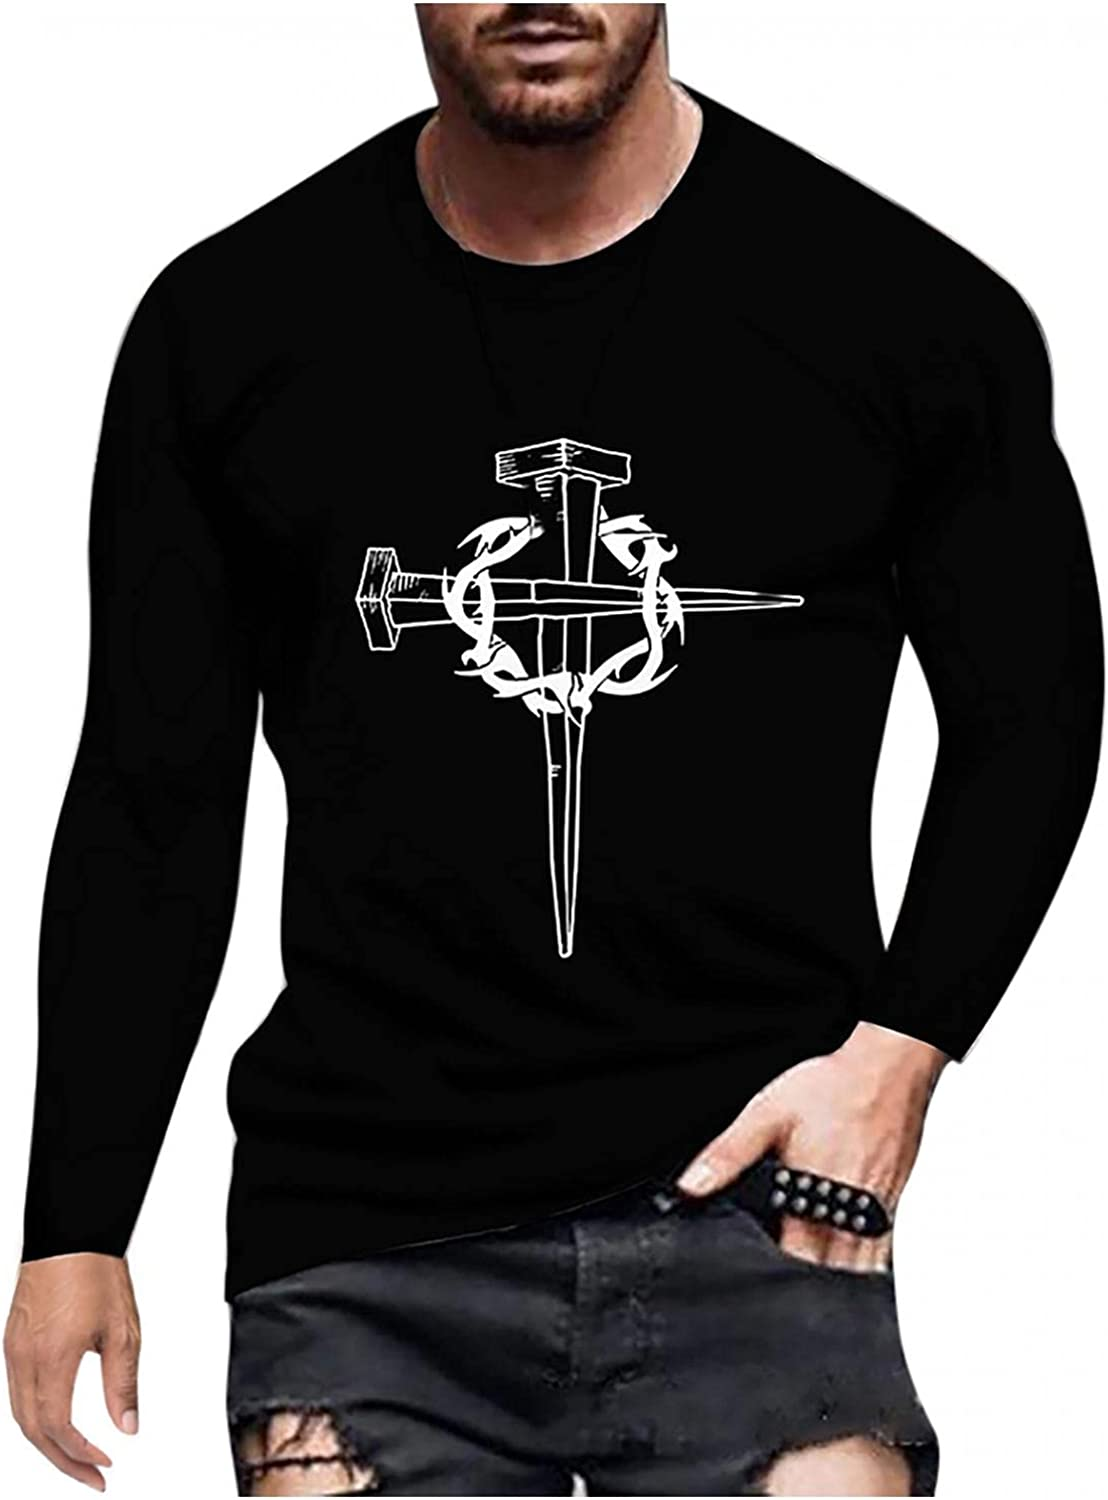 Long Sleeve Tee Shirts for Men Casual Sport Pullover Fashion Graphic Athletic Sweatshirt Active Jogging Shirts Tops